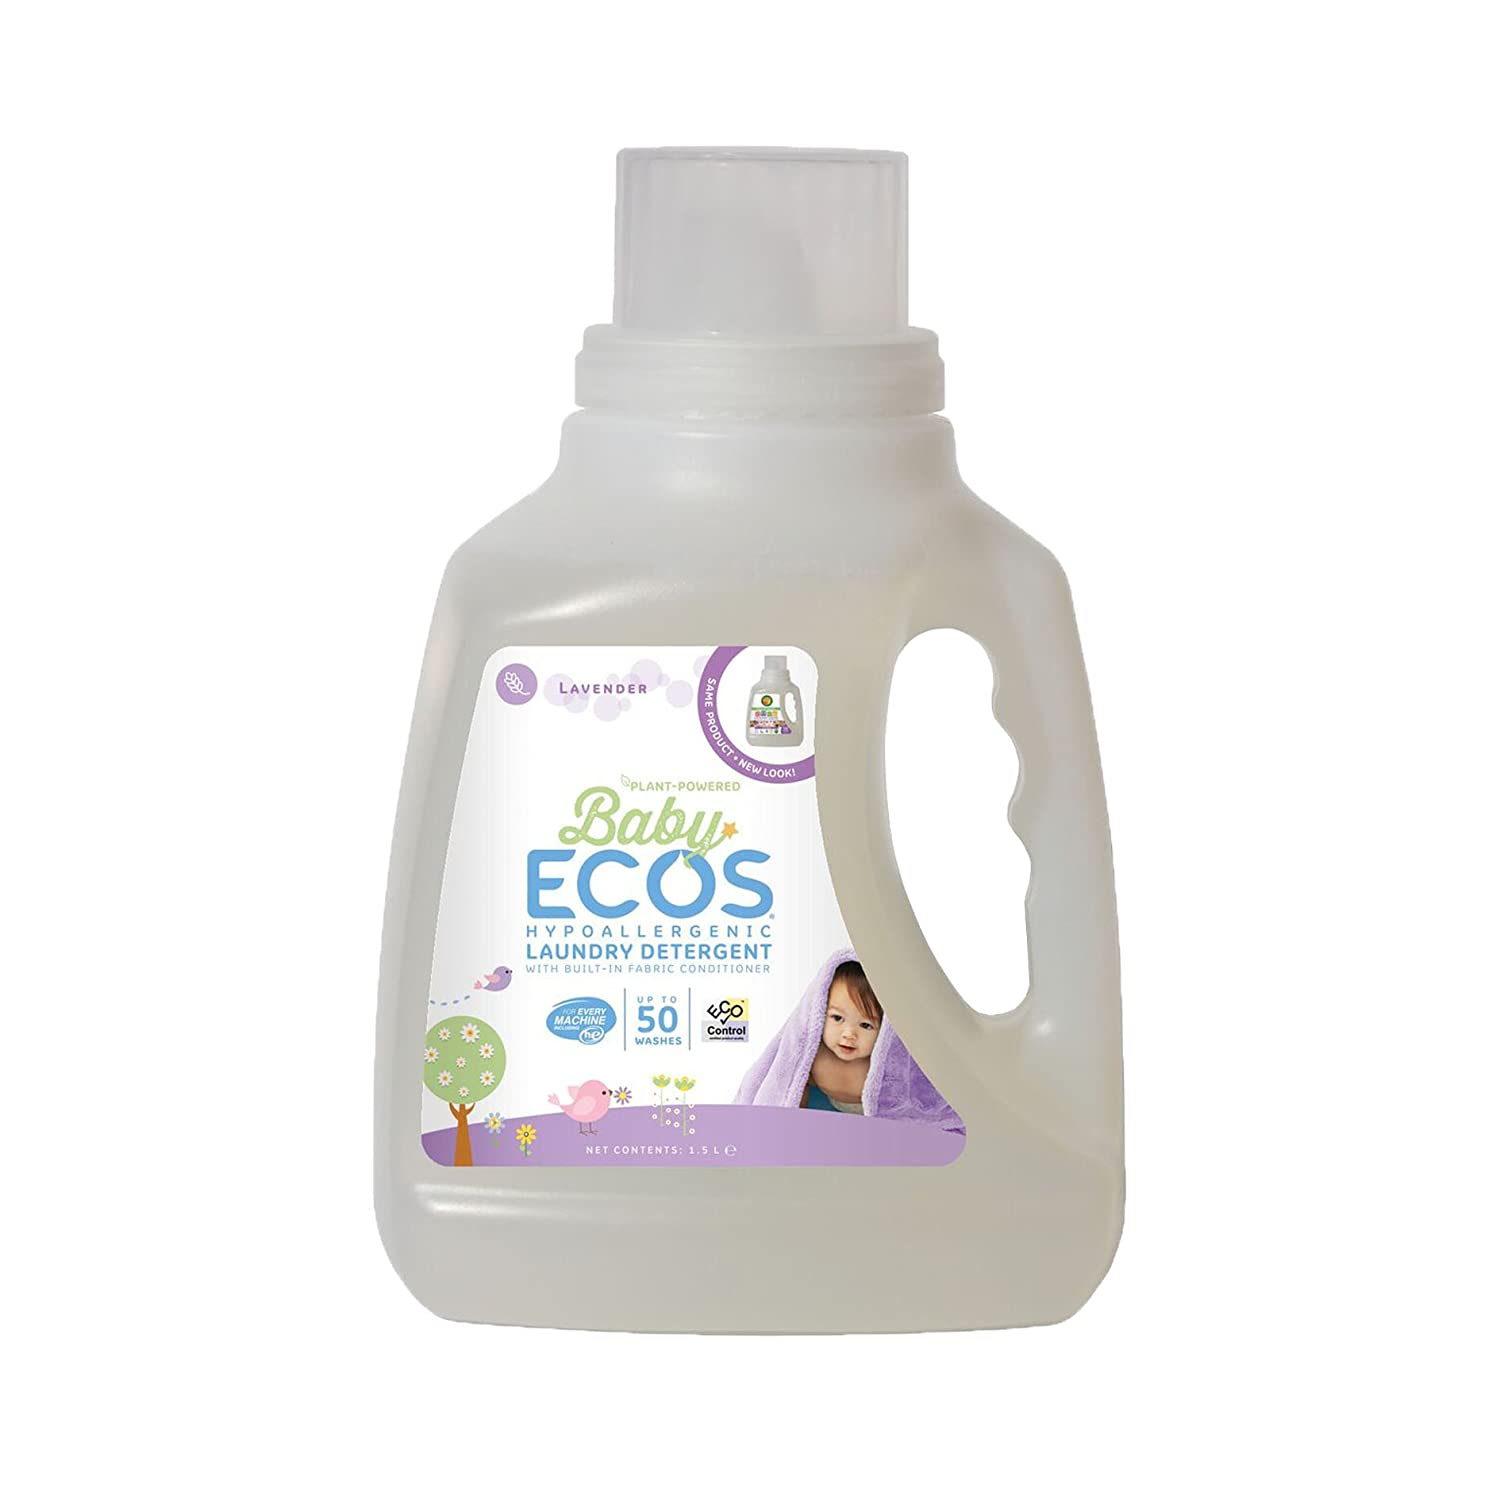 Earth Friendly Products Baby Laundry Detergent 50 Washes 1.5 Litres: Amazon.co.uk: Health & Personal Care